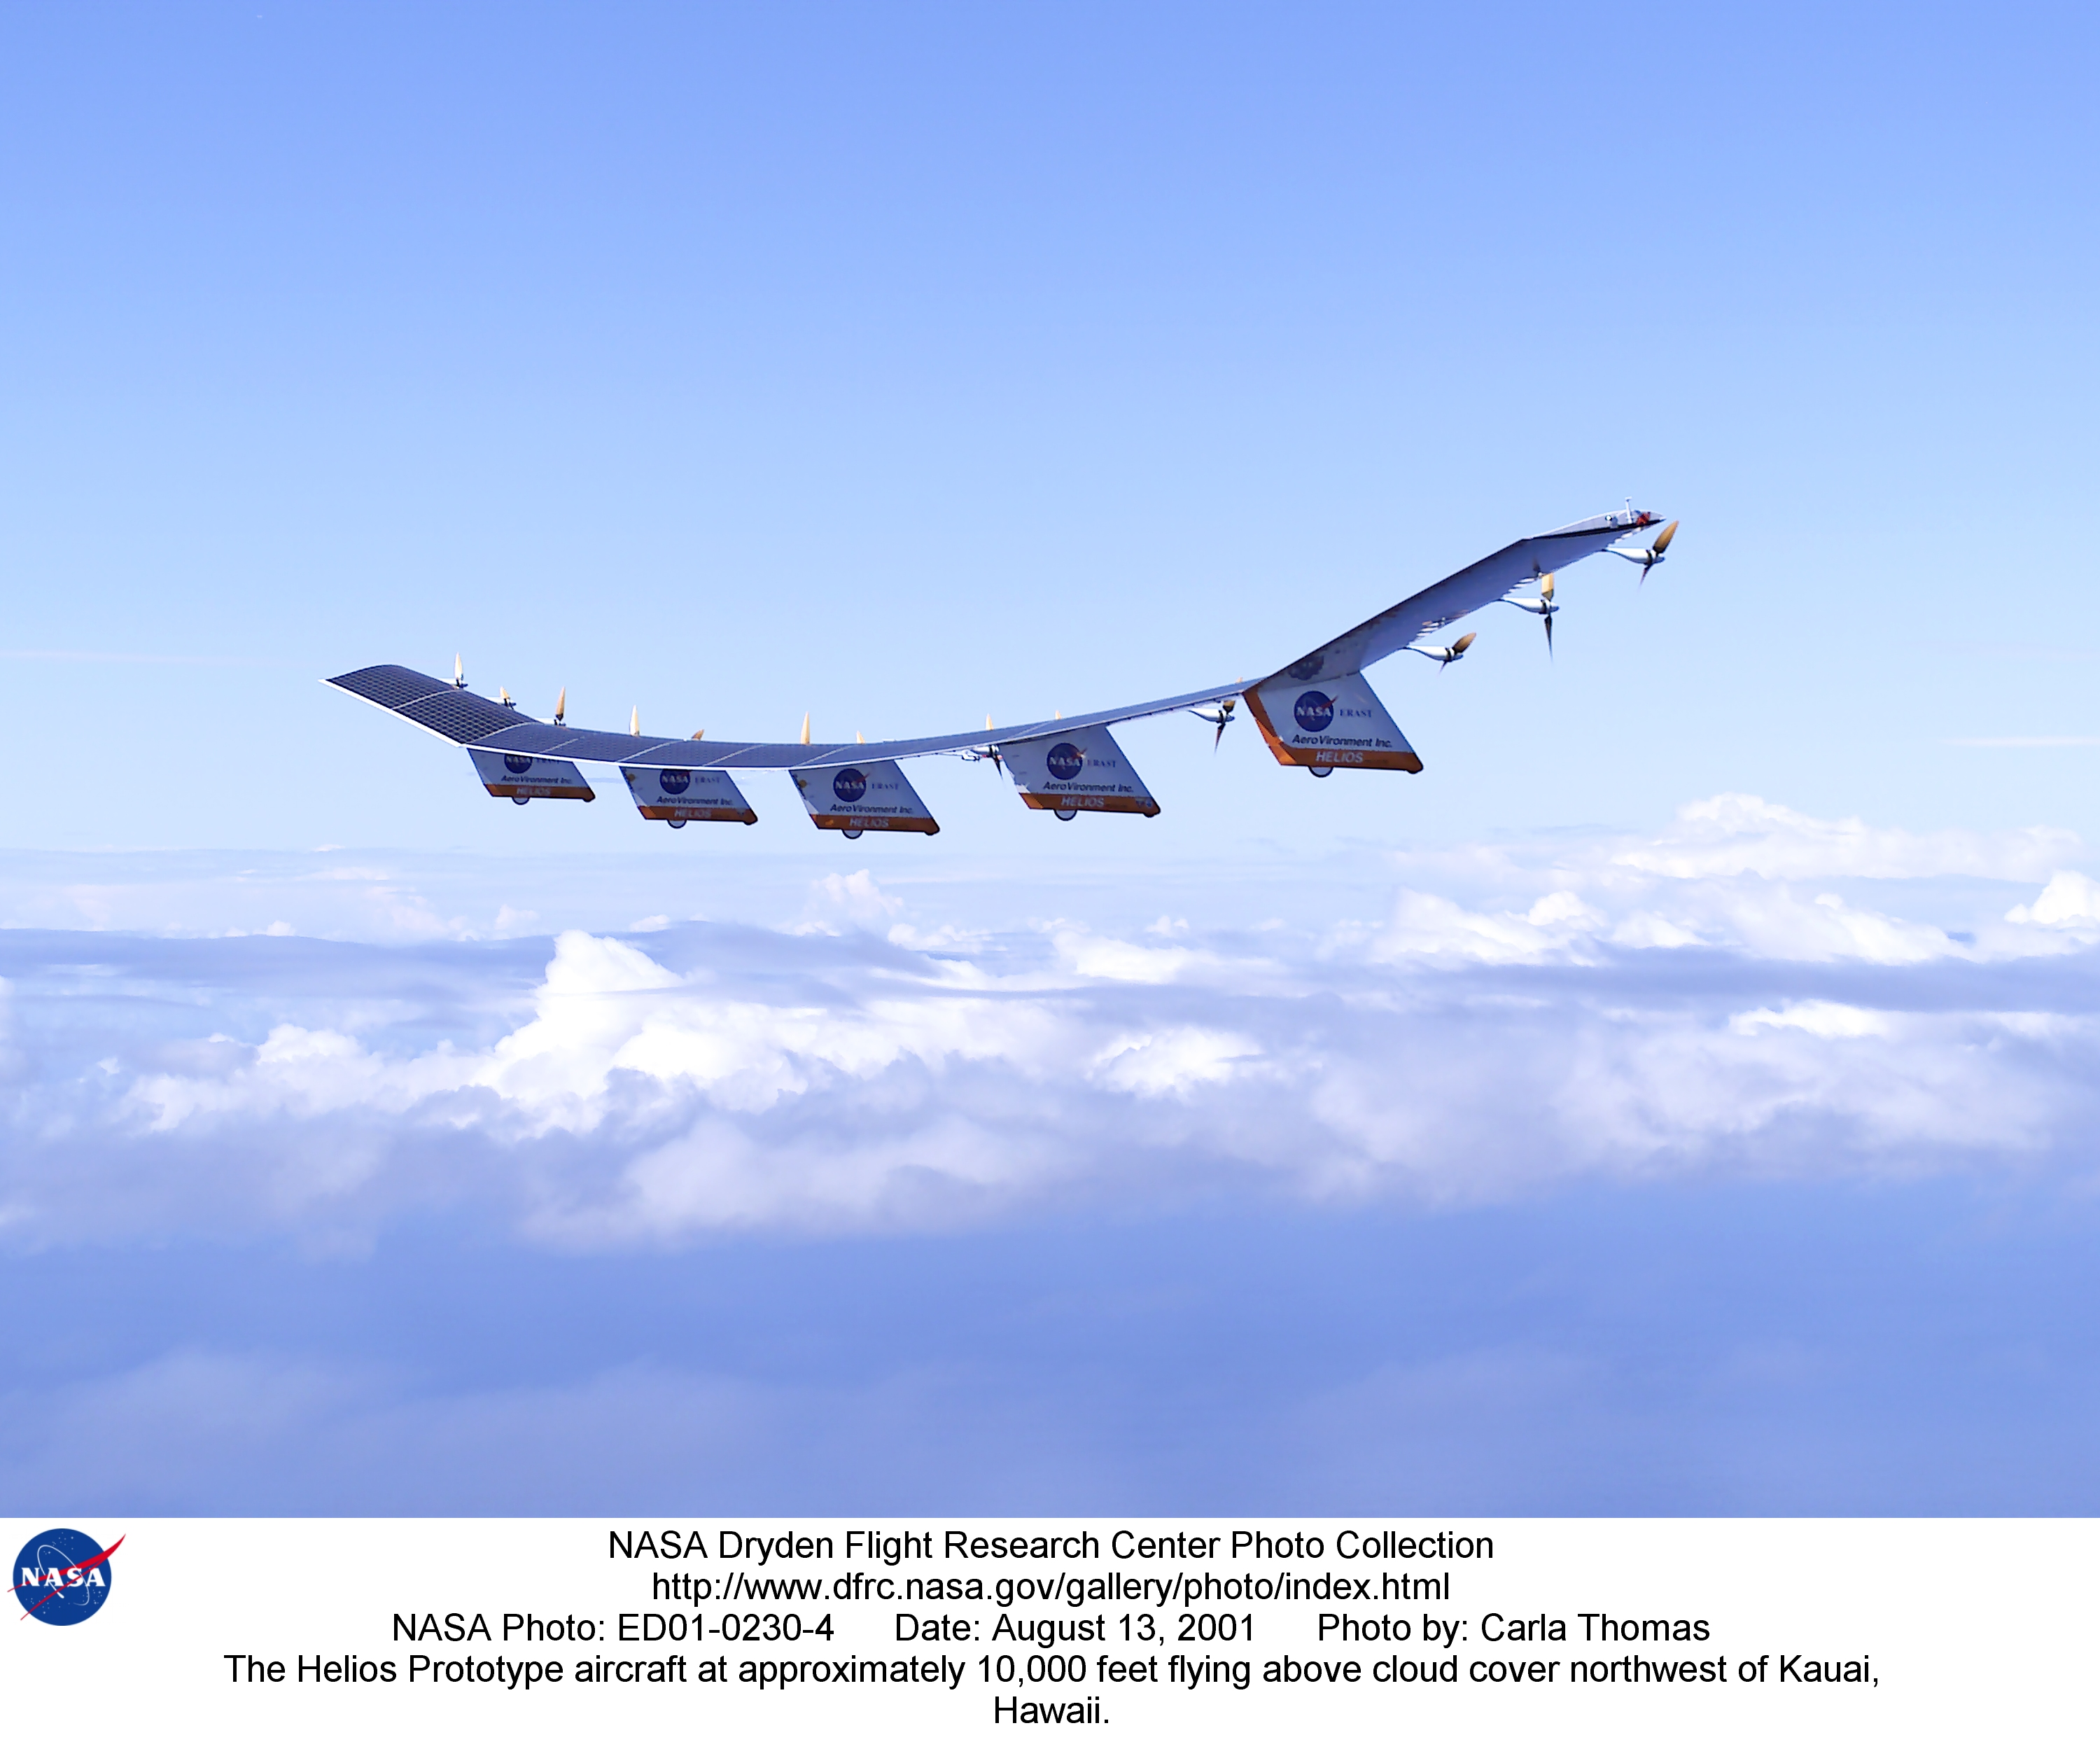 how fast do drones fly with Ap110724 on Is Future Wi Fi Facebook Creates New Detector Uses LASERS Bring Inter  Remote Areas moreover Hm830 Easy Rc Folding A4 Paper Airplane additionally Single Seat Helicopter Design By Igarashi Design as well El Avion Mas Rapido likewise Mjx Bugs 3.